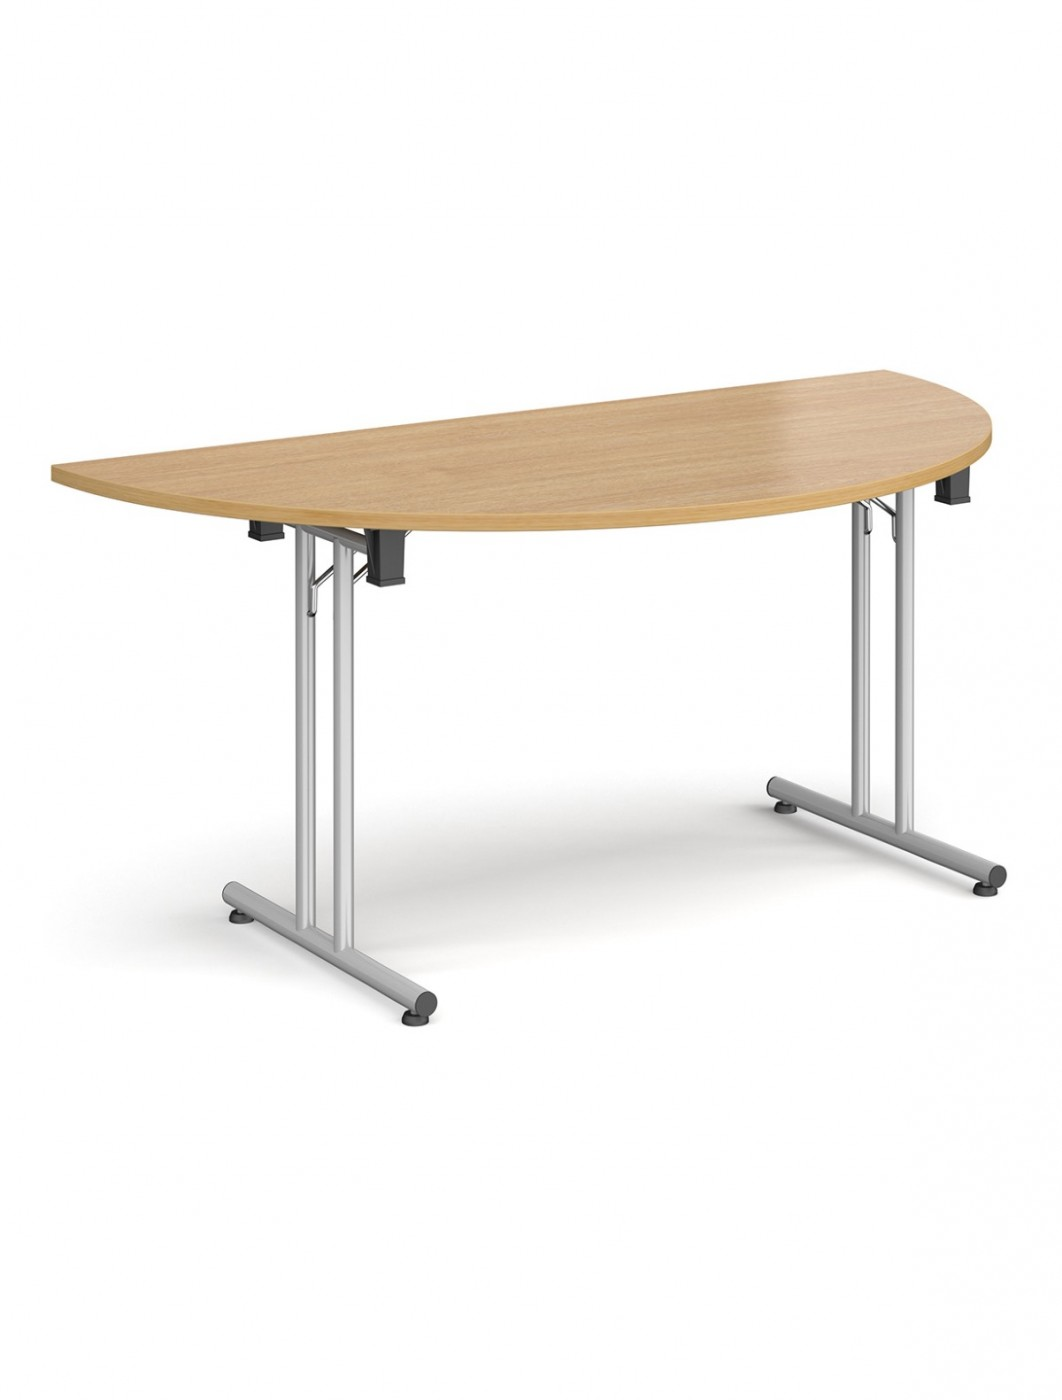 Oak Table - Semi-Circular Straight Folding Leg Meeting Table 1600mm SFL1600S-S-O